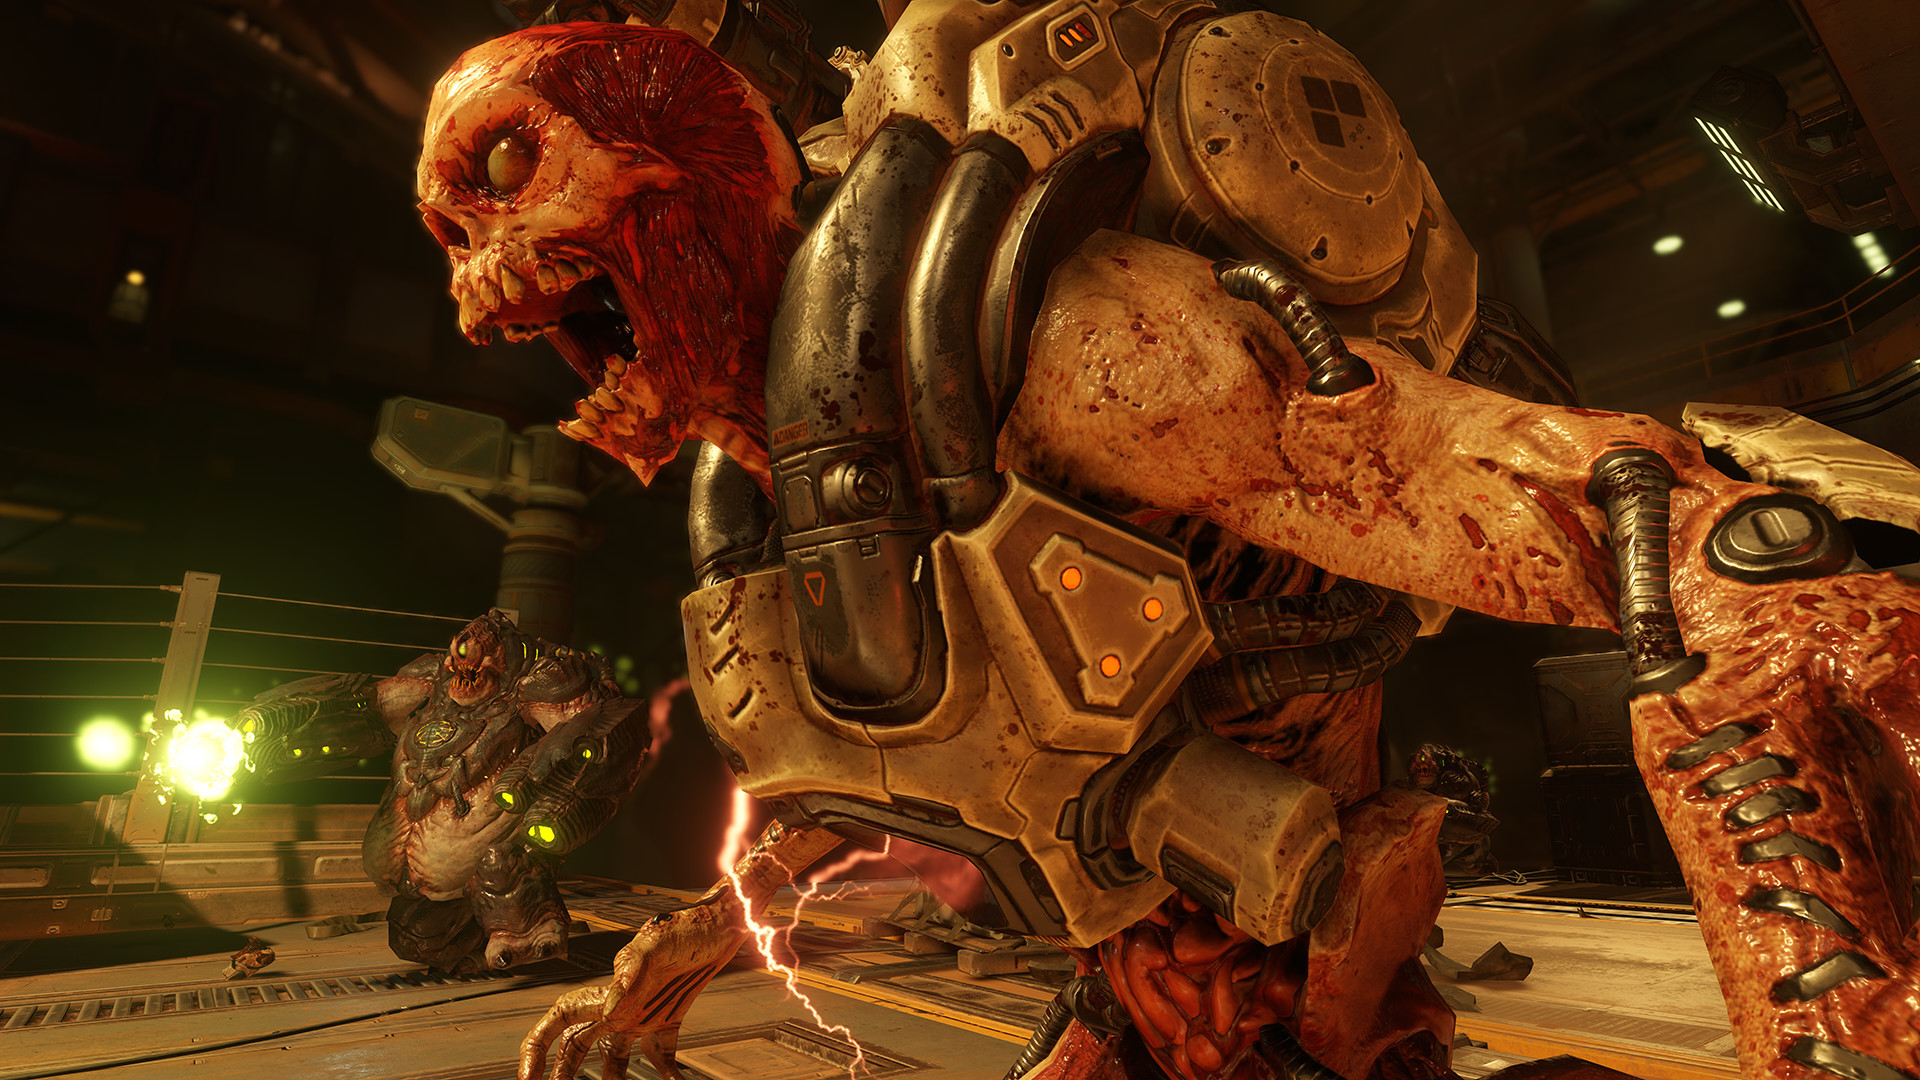 Doom and Wolfenstein 2: The New Colossus are coming to Nintendo Switch